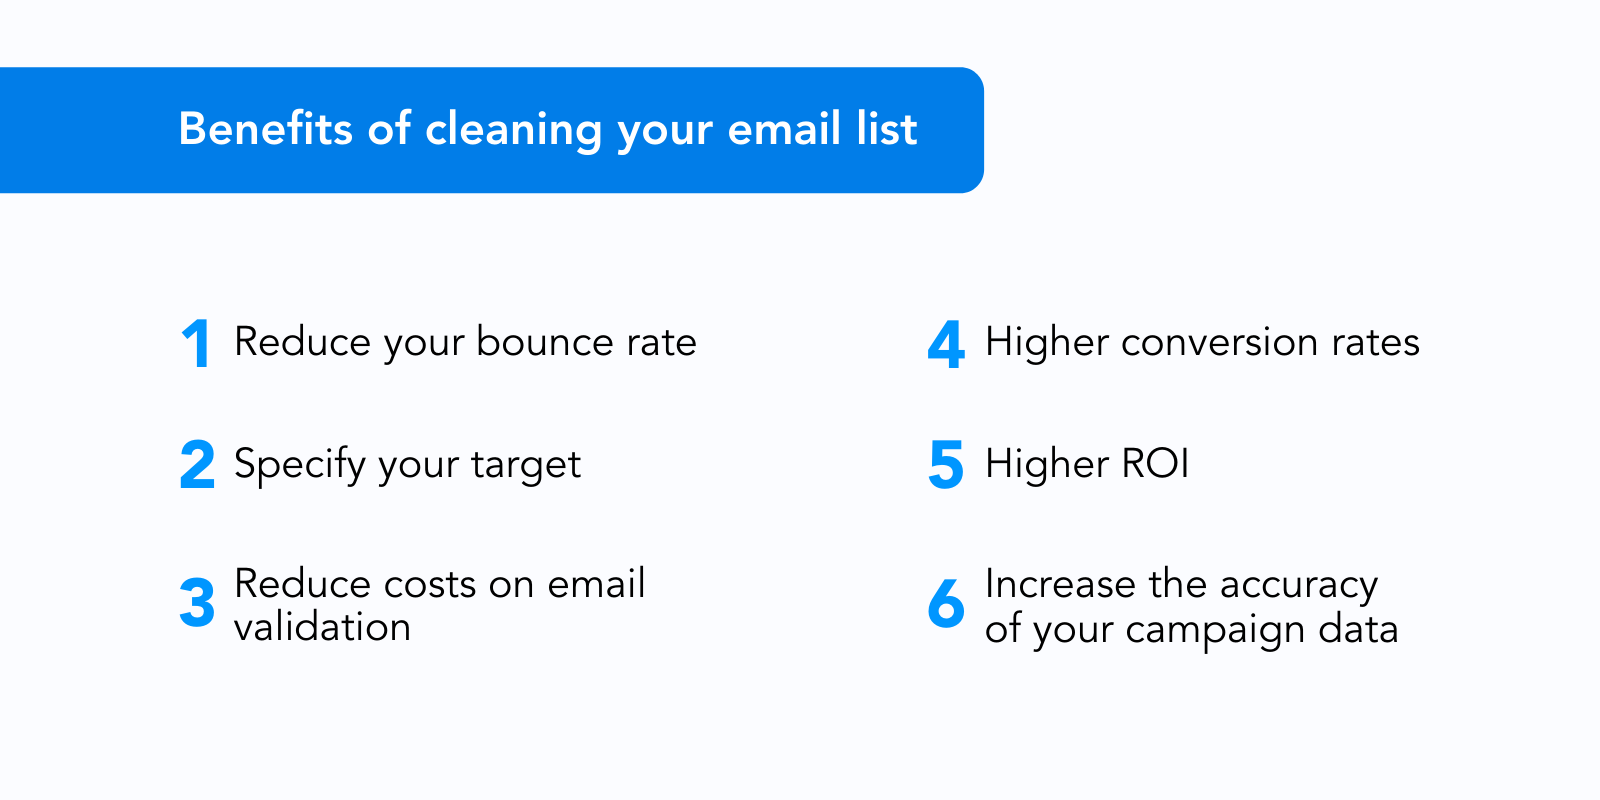 Benefits of cleaning email list